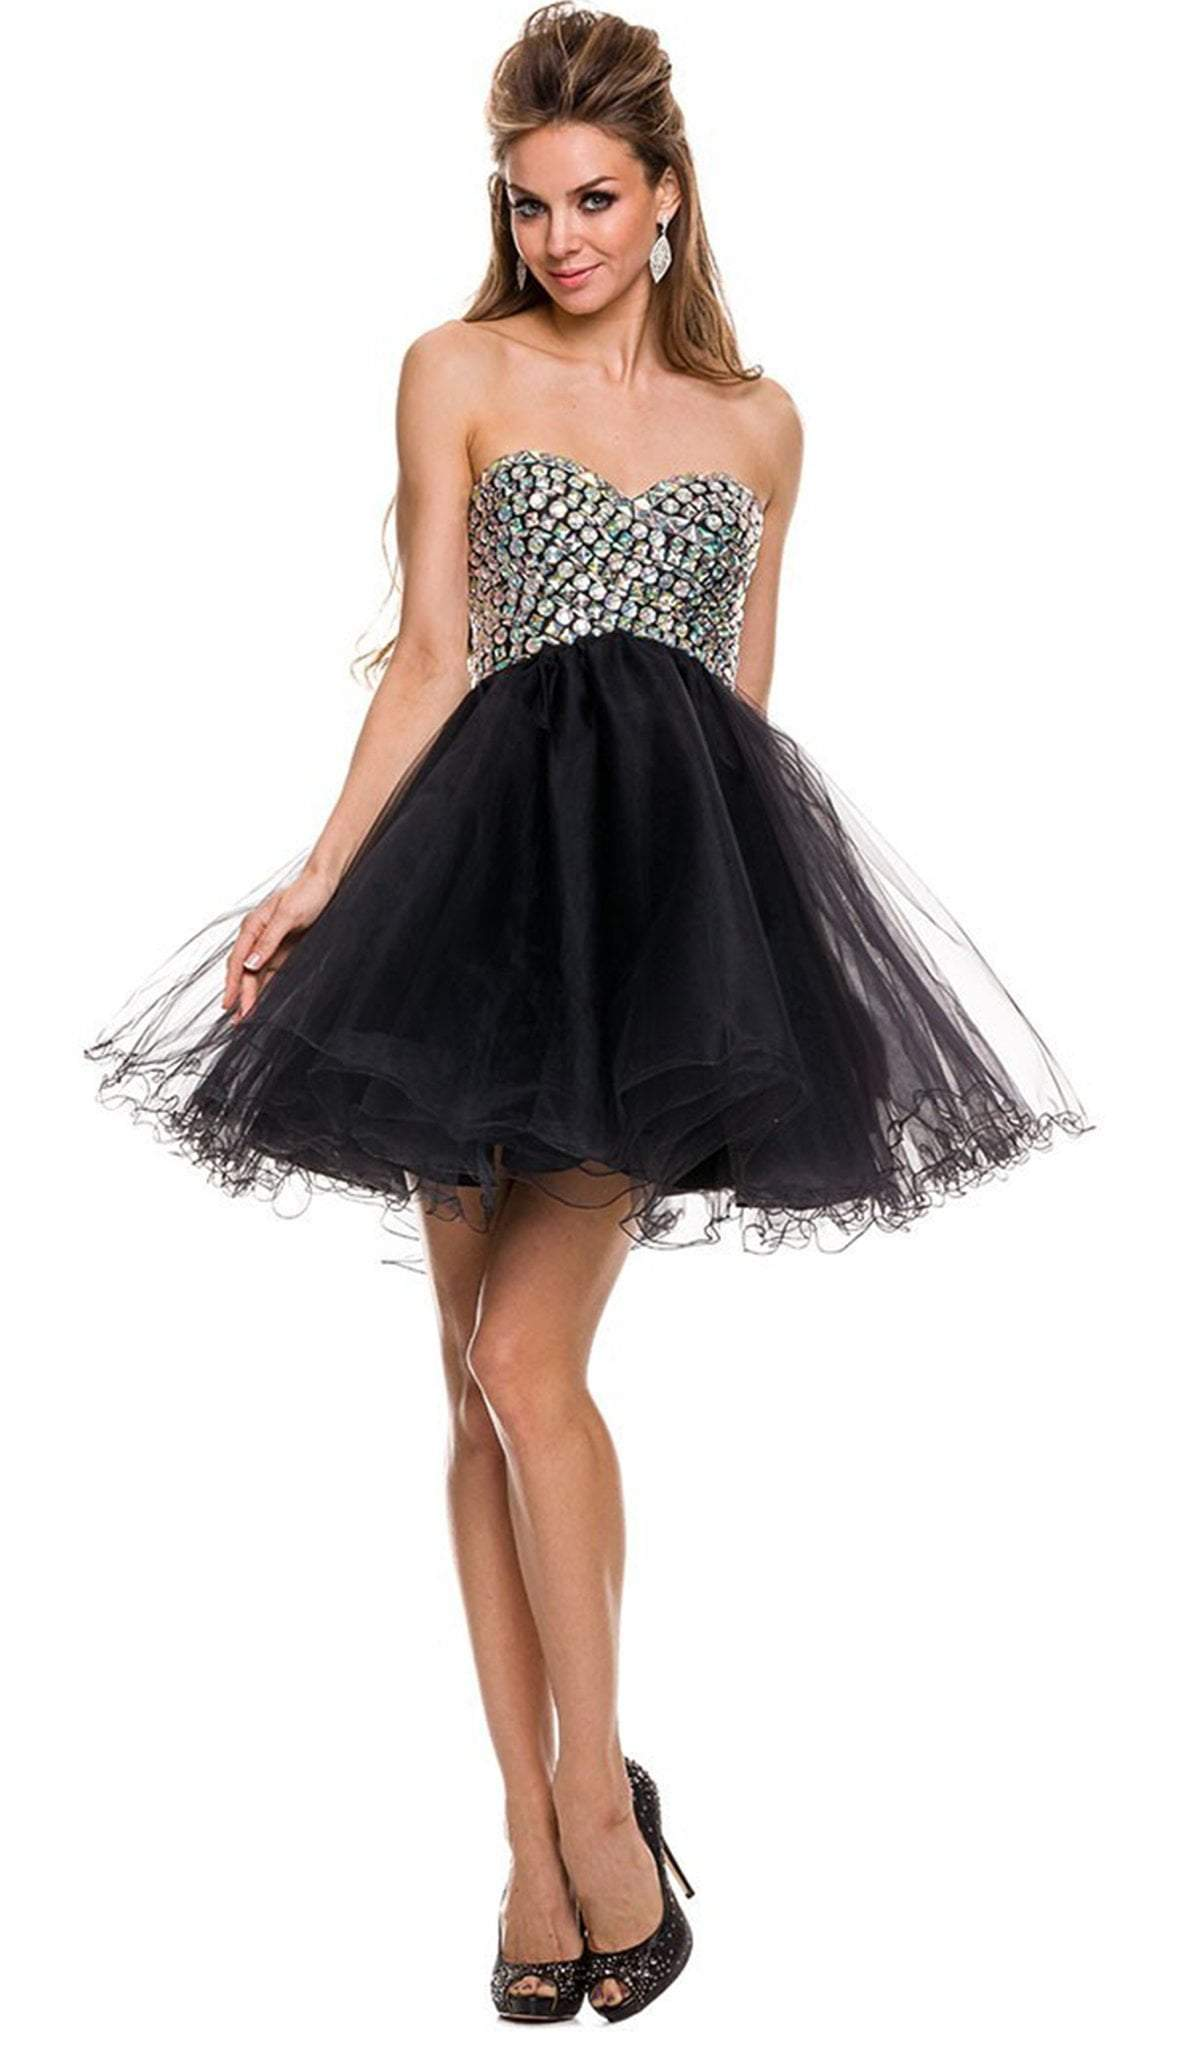 Nox Anabel - Strapless Beaded Sweetheart A-Line Dress 6010SC